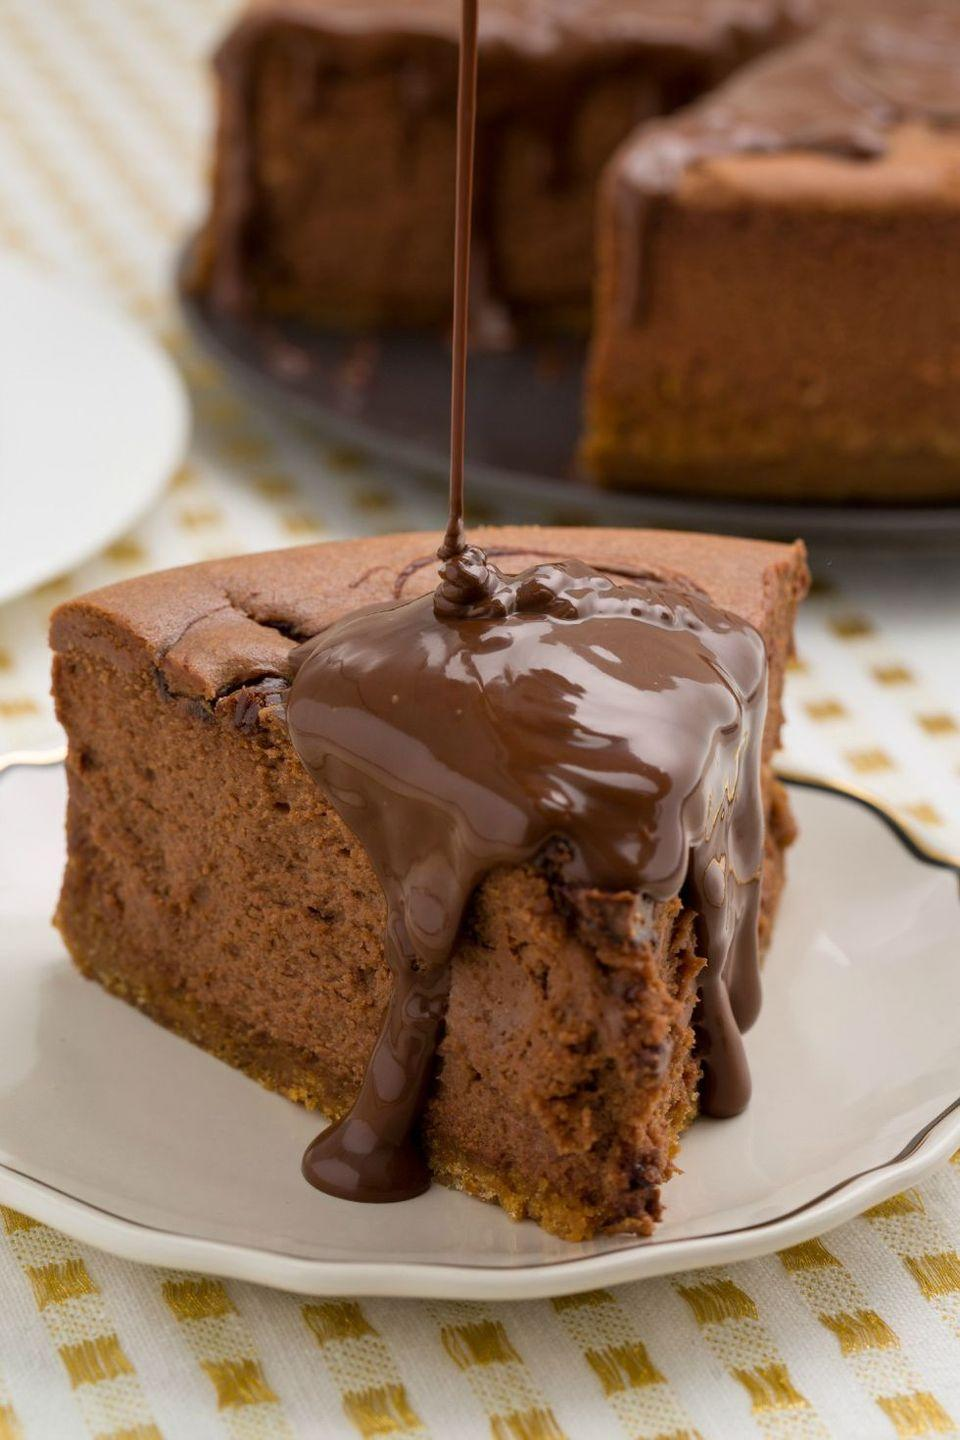 """<p>Nutella? Good. Nutella cheesecake? Even better.</p><p>Get the recipe from <a href=""""https://www.delish.com/cooking/recipe-ideas/recipes/a45125/nutella-cheesecake-recipe/"""" rel=""""nofollow noopener"""" target=""""_blank"""" data-ylk=""""slk:Delish"""" class=""""link rapid-noclick-resp"""">Delish</a>.</p>"""